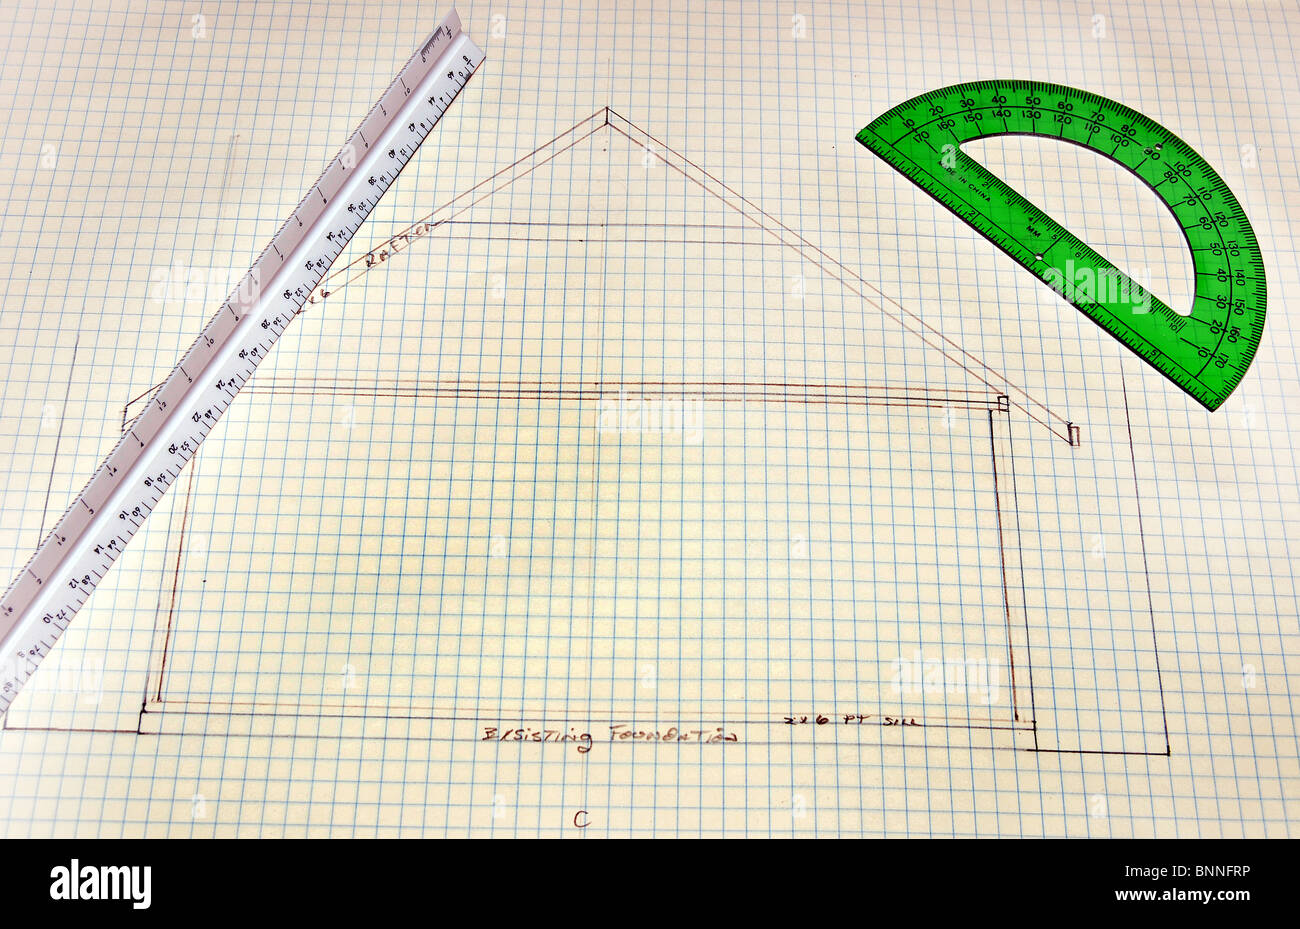 rough sketch of house floor plans on grid paper with green ruler